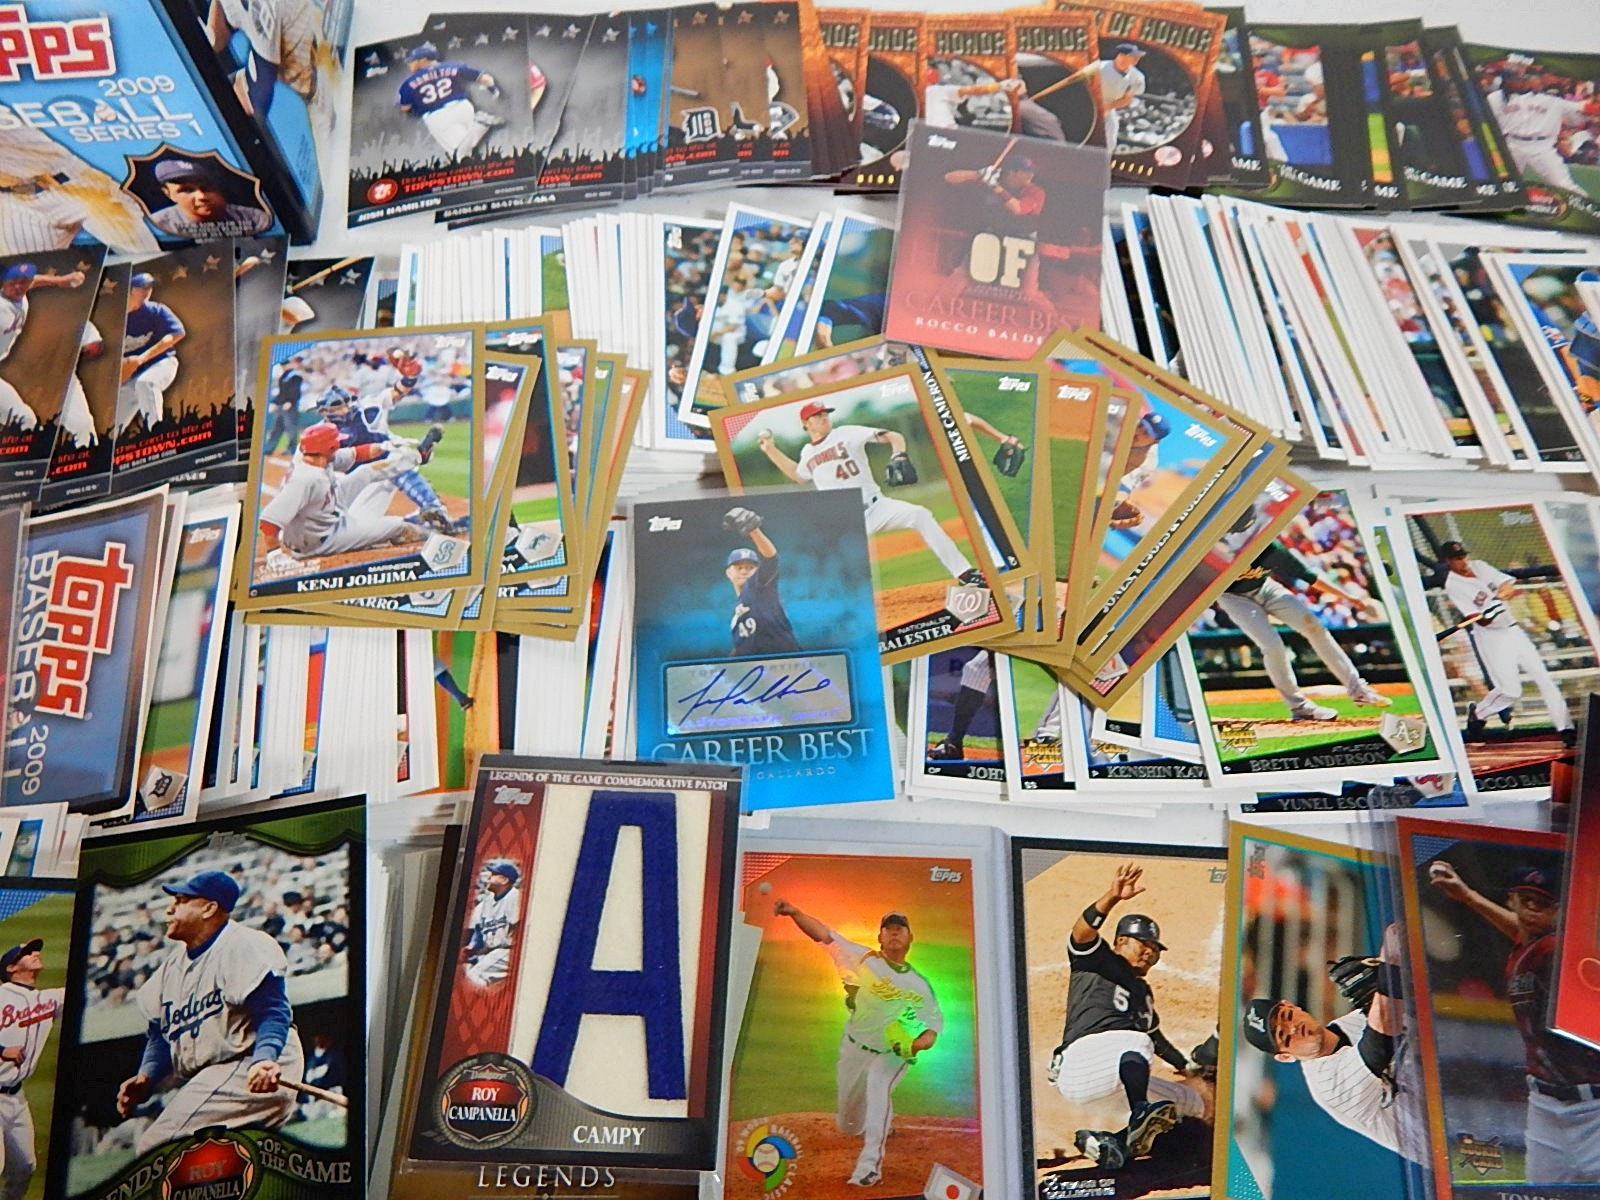 2009 Topps and Topps Heritage Baseball Card Collection - Few Hundred Cards